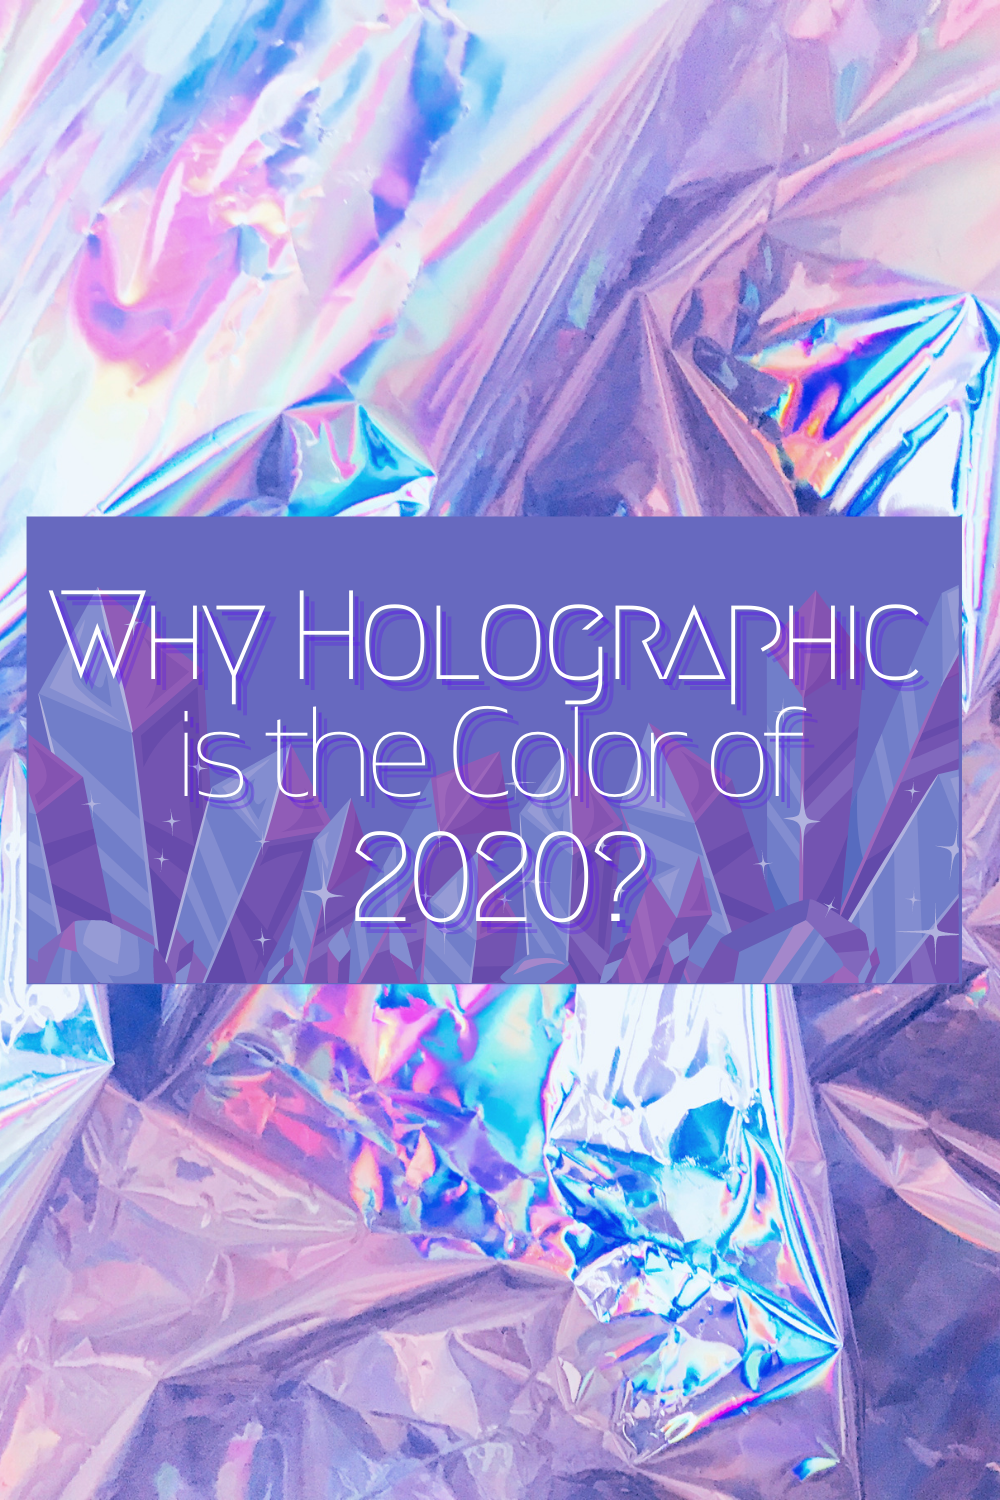 Why Holographic is the Color of 2020